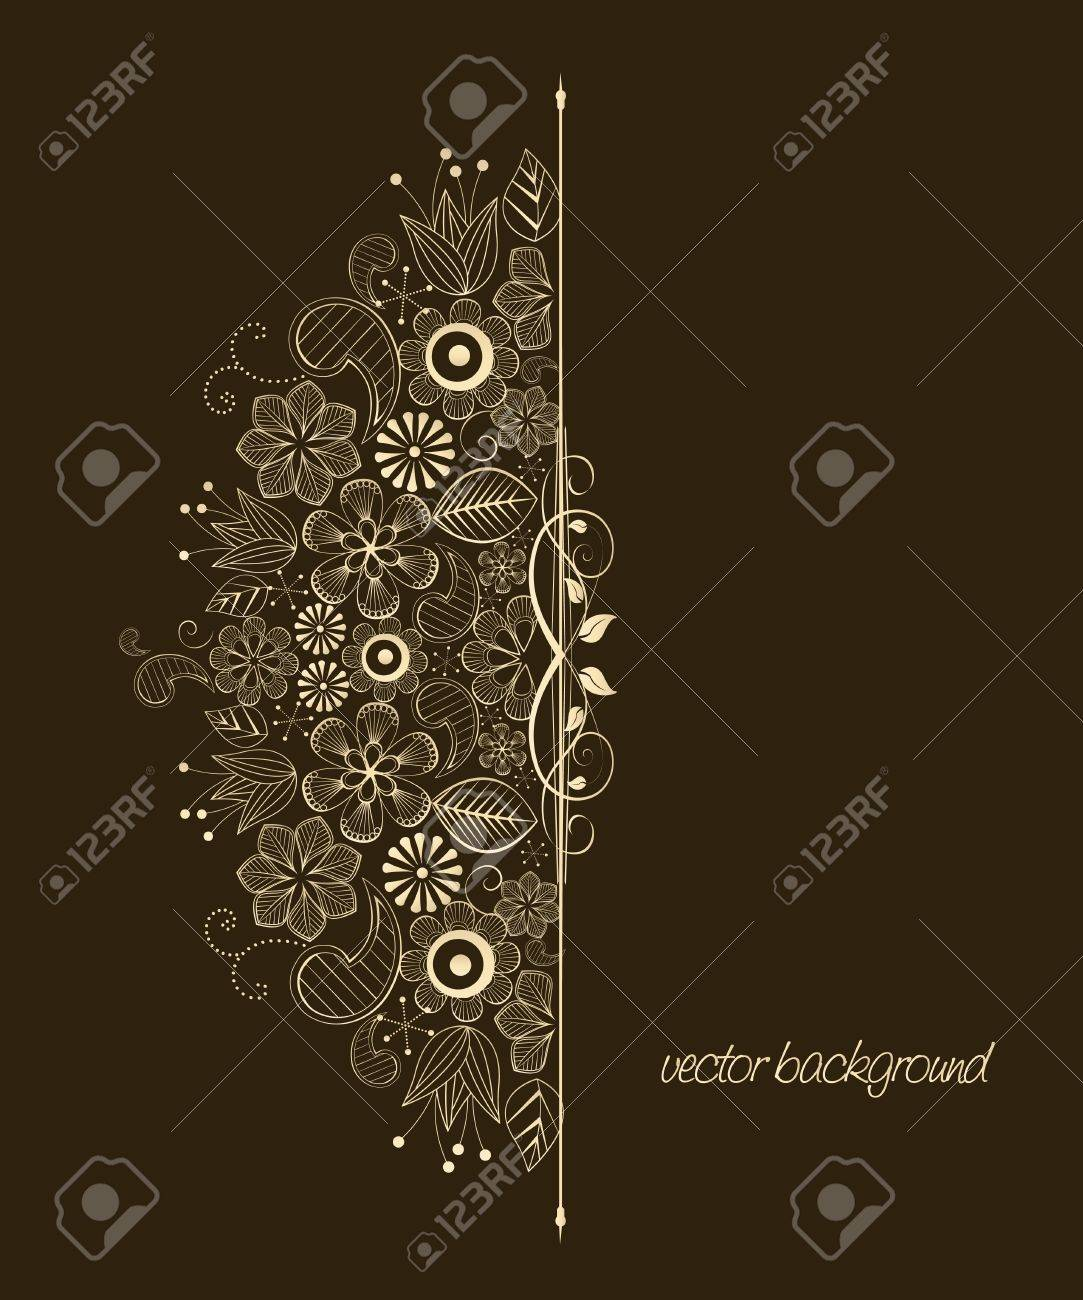 Beautiful floral illustration on brown background Stock Vector - 12831967